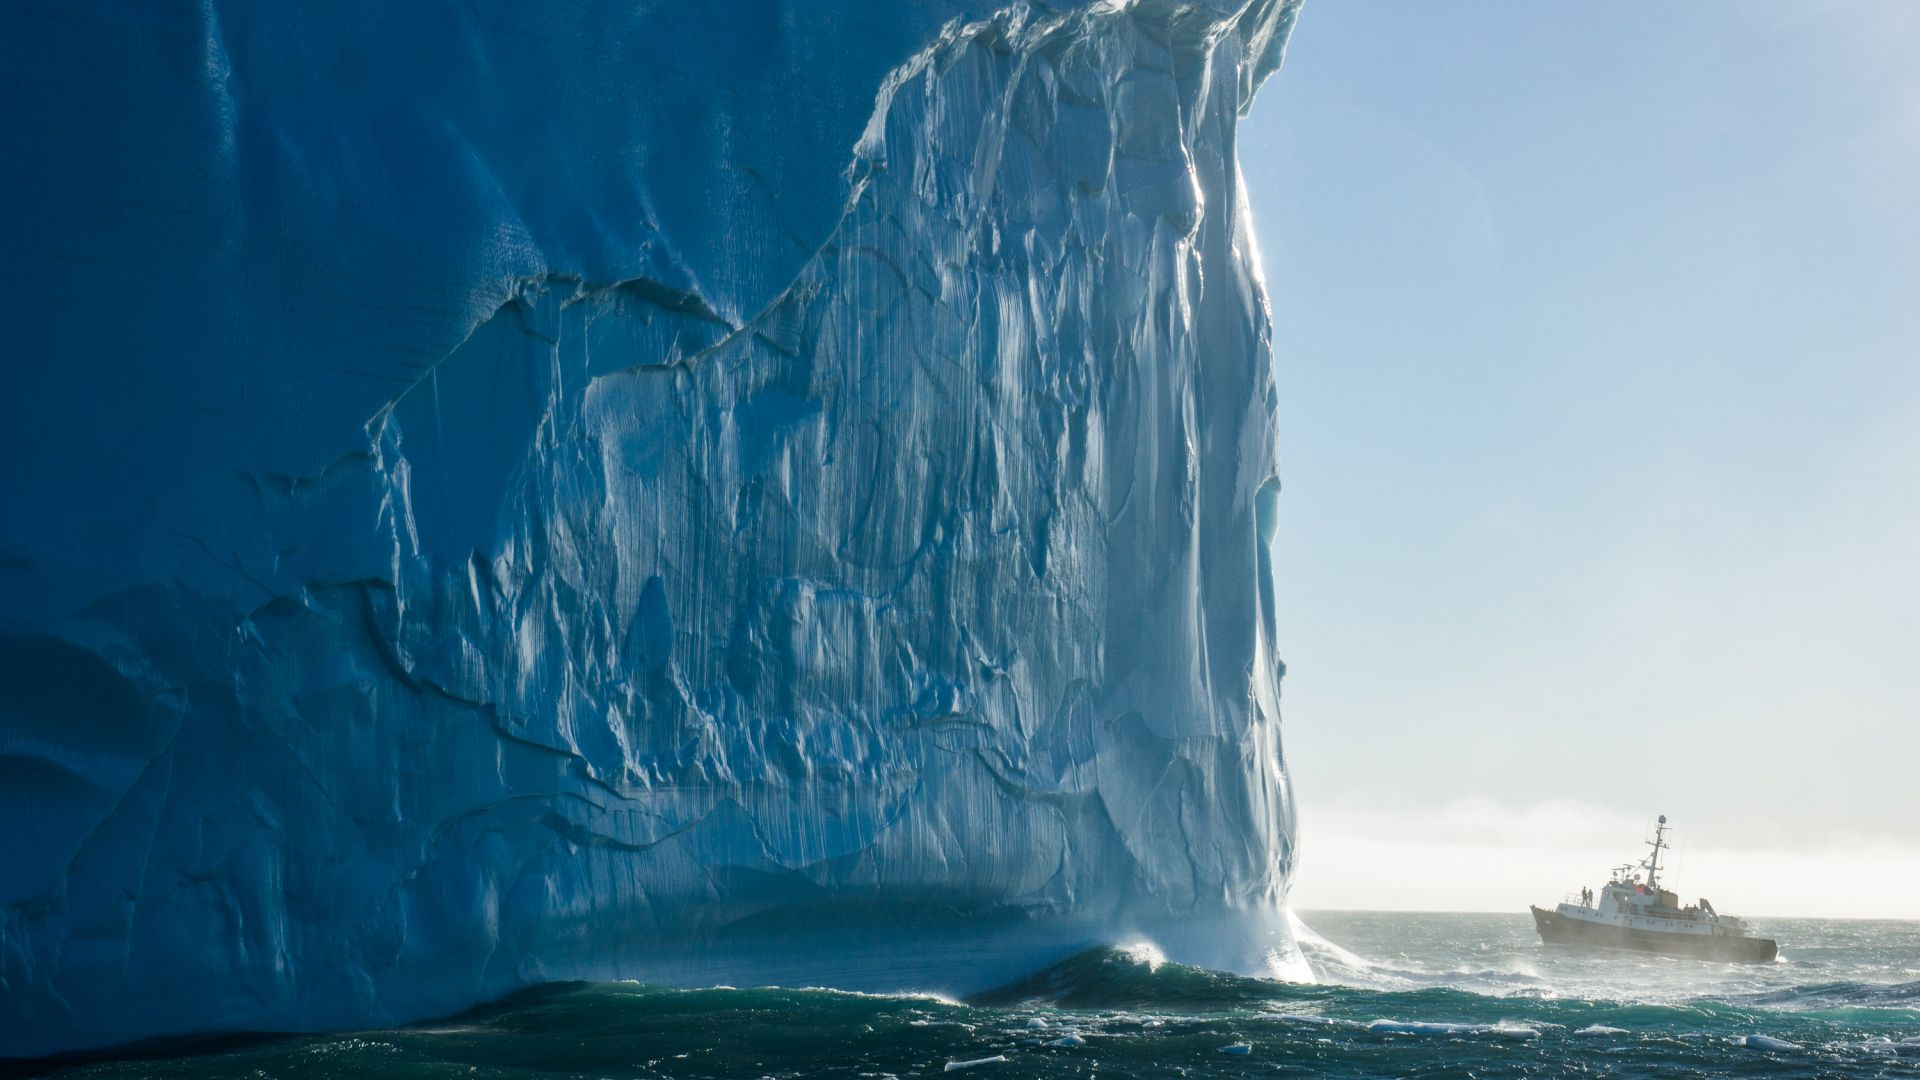 Iceberg, 4k, HD wallpaper, South Georgia, Atlantic Ocean, ship, travel, tourism, ocean, National Geographic Traveler Photo Contest (horizontal)